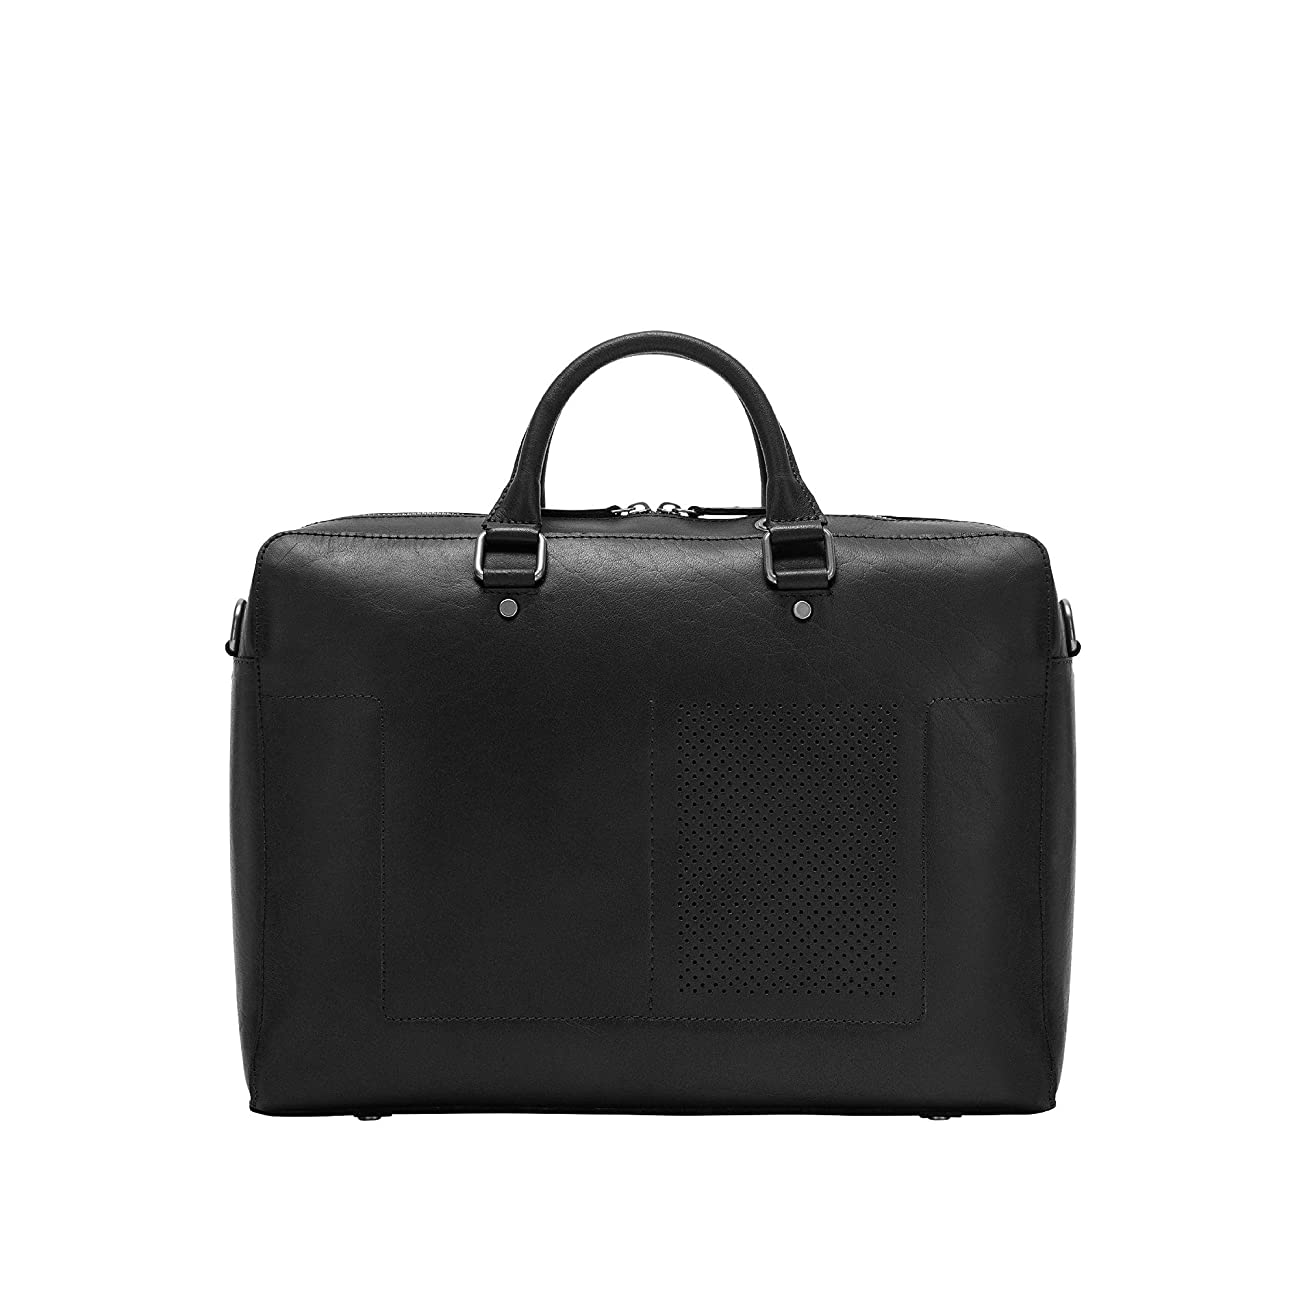 DUDU Leather Briefcase Messenger Bag Laptop Bag for Men Two Handles with Strap and Zip Closure Black